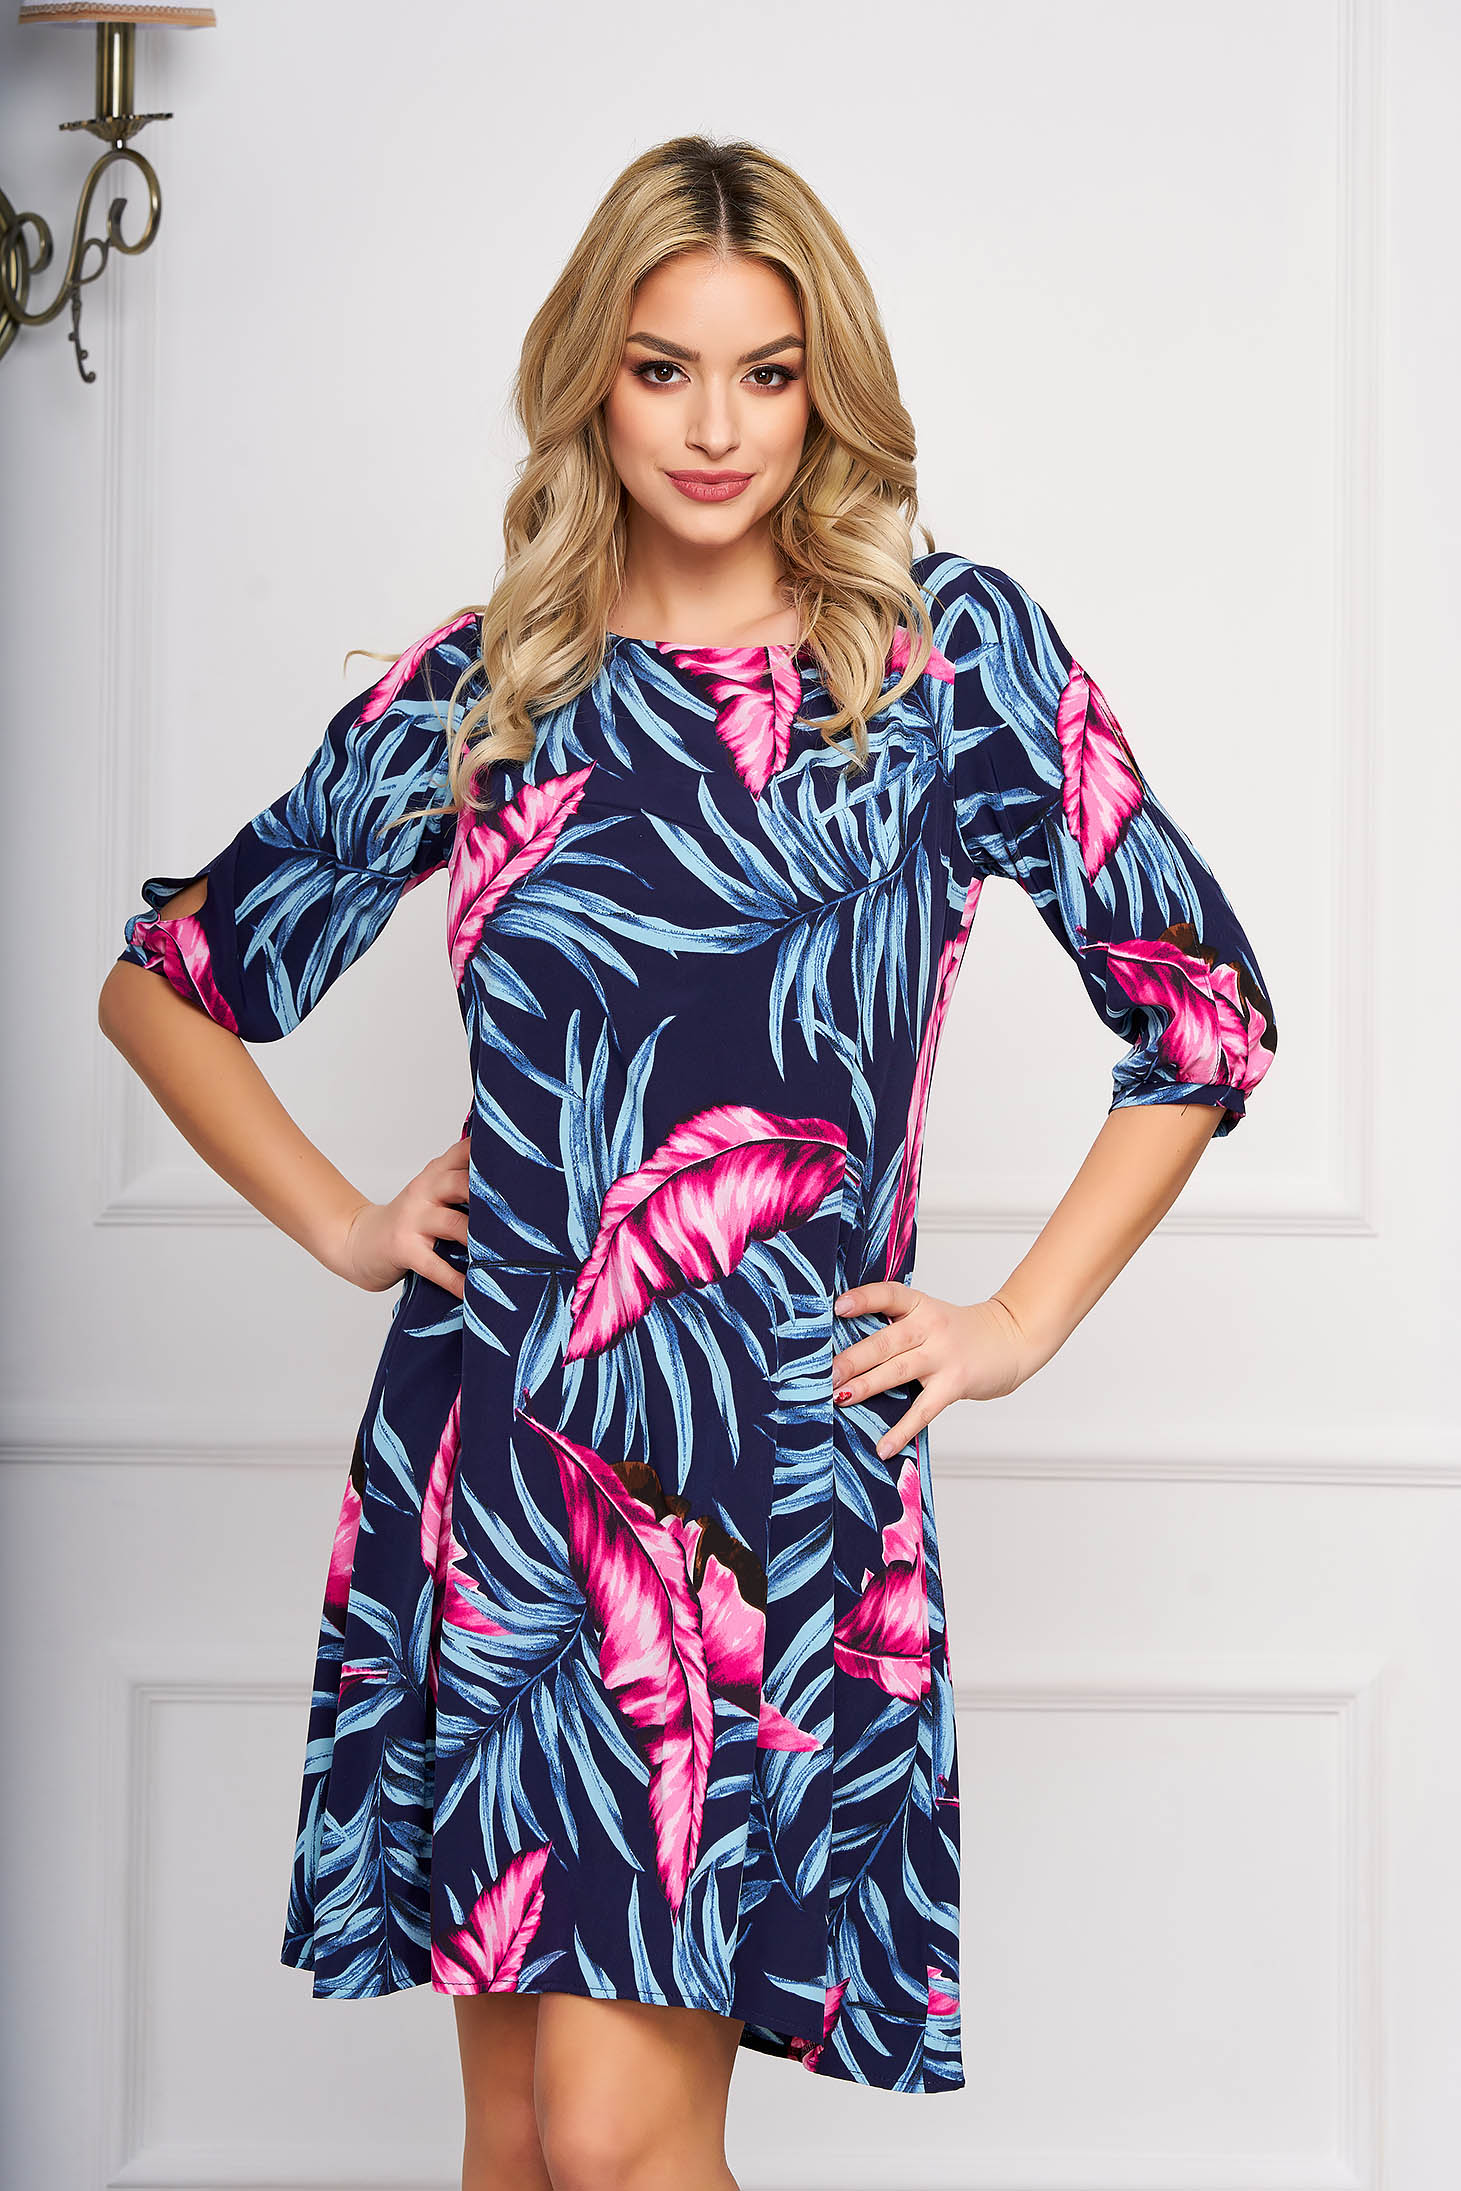 Blue dress from veil fabric with floral print a-line with 3/4 sleeves elegant short cut